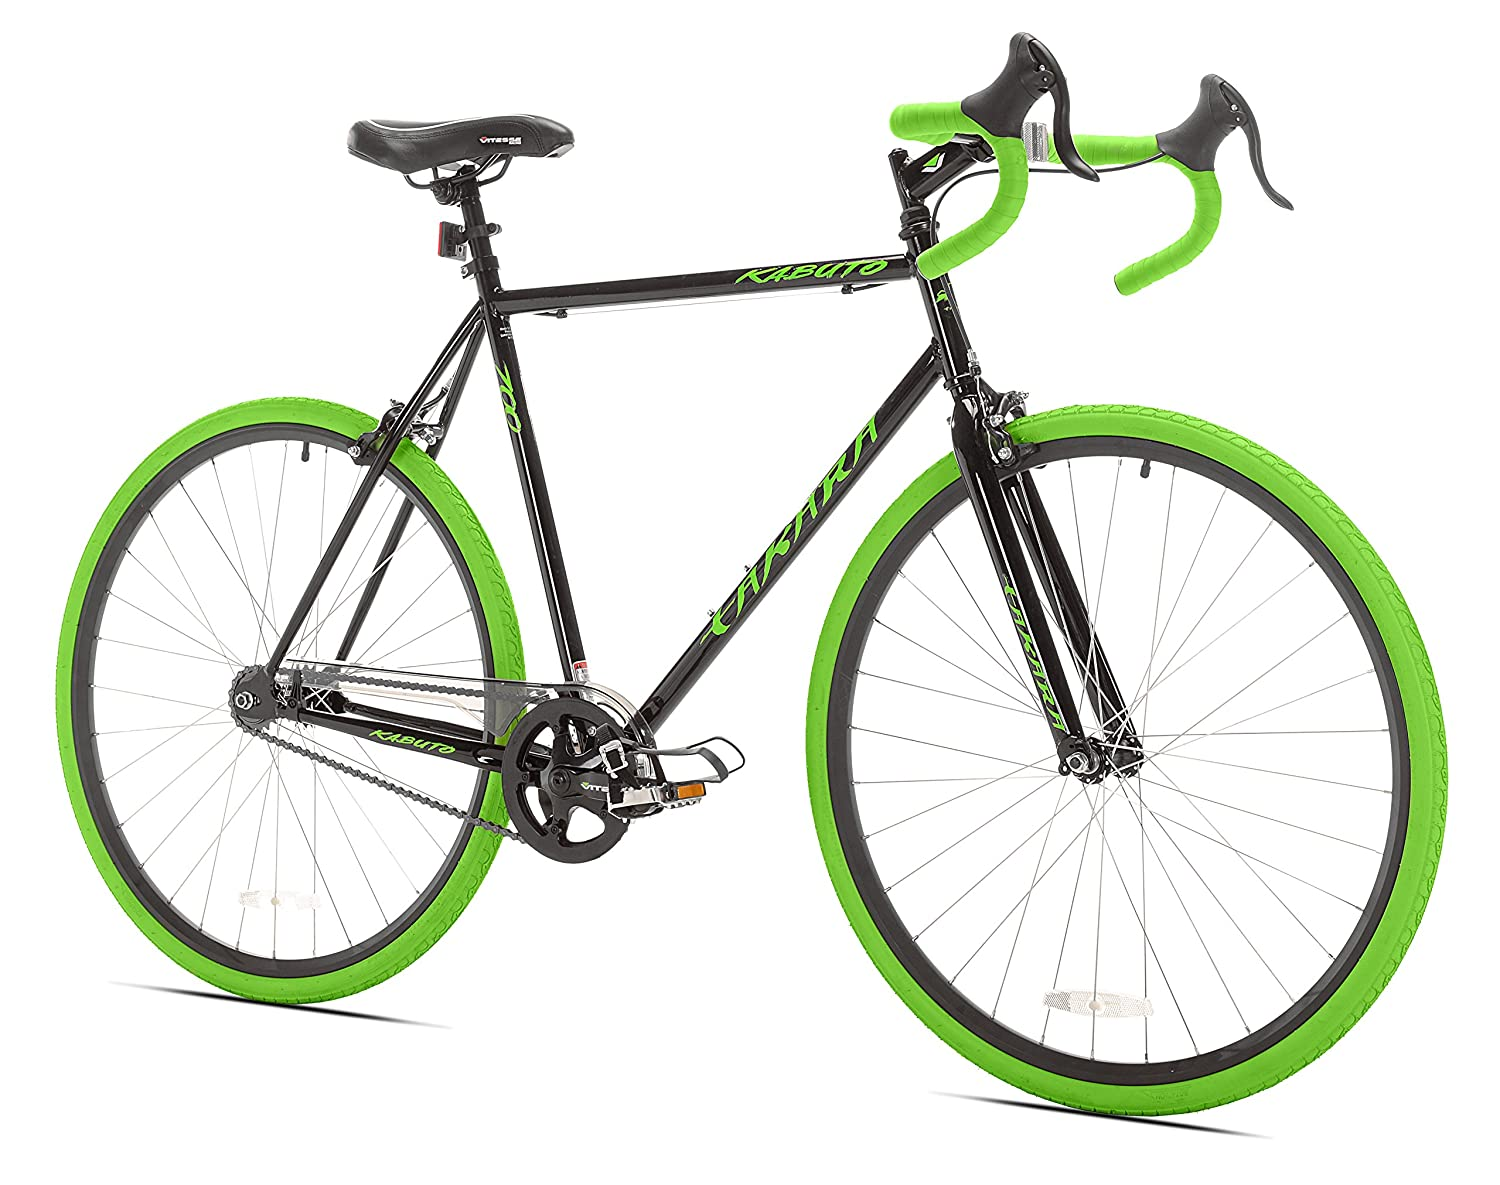 Top 30 Best Fixed Speed Bikes Under 500 Dollars 2019-2020 - cover